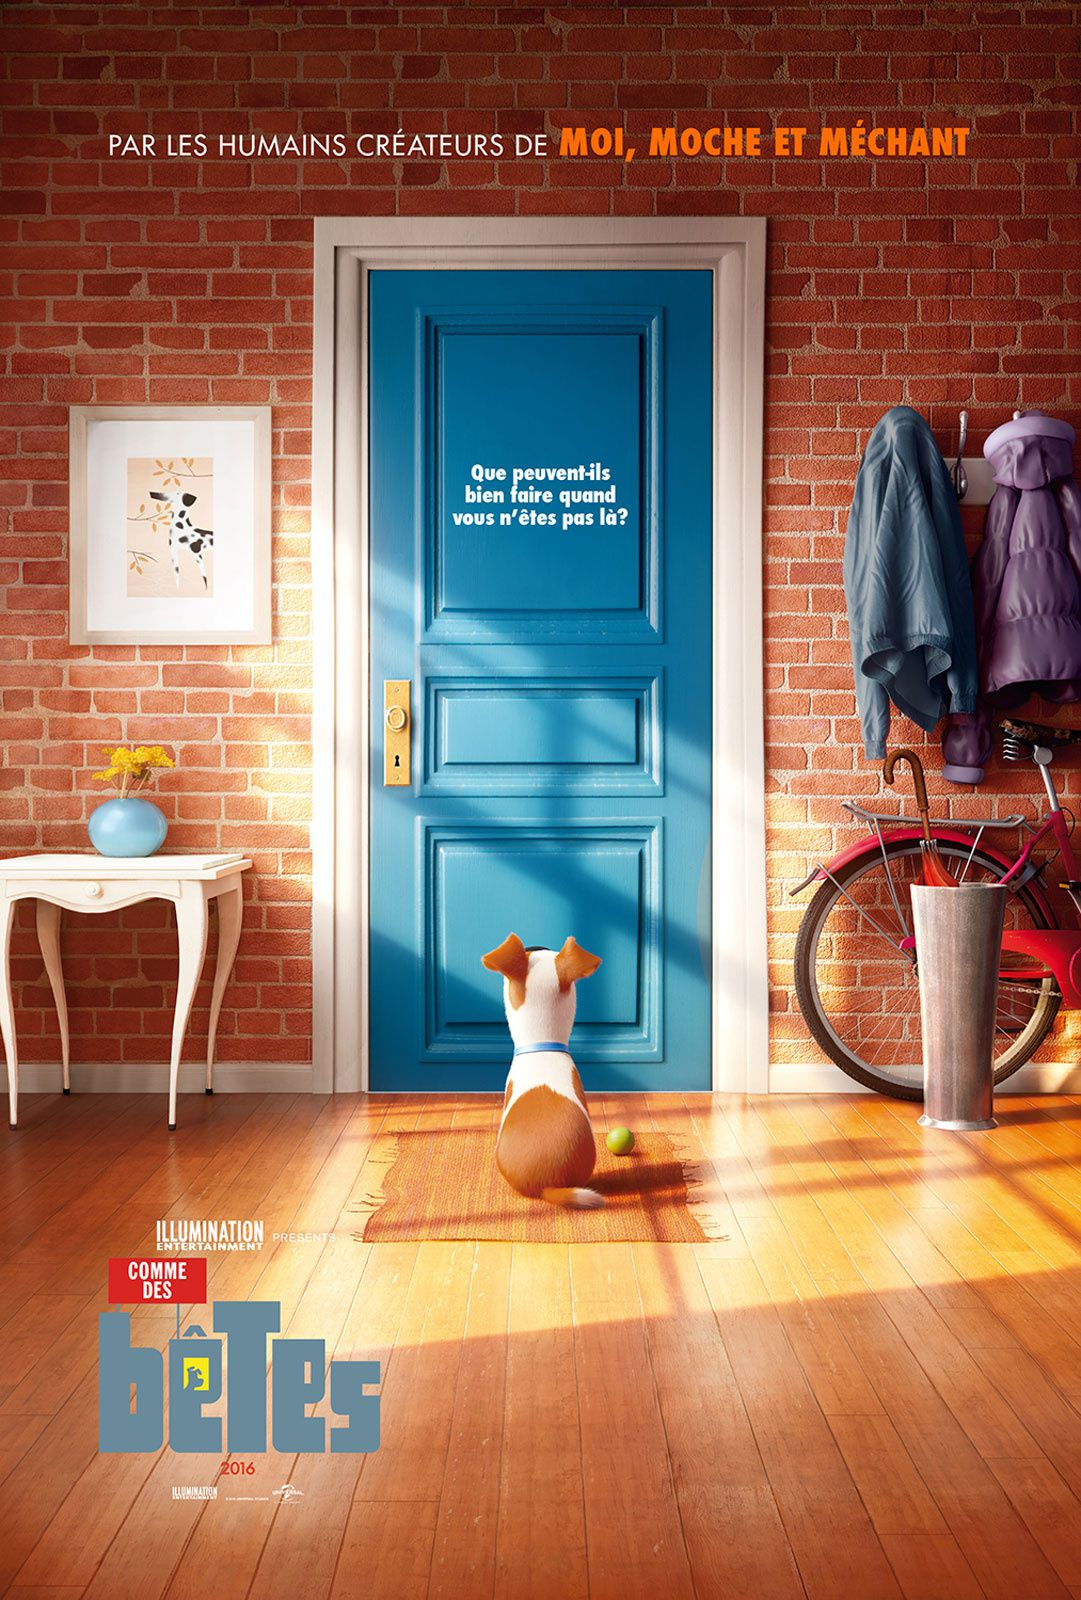 Comme des bêtes (BANDE ANNONCE VF et VOST) de Yarrow Cheney, Chris Renaud - 27 07 2016 (The Secret Life of Pets)